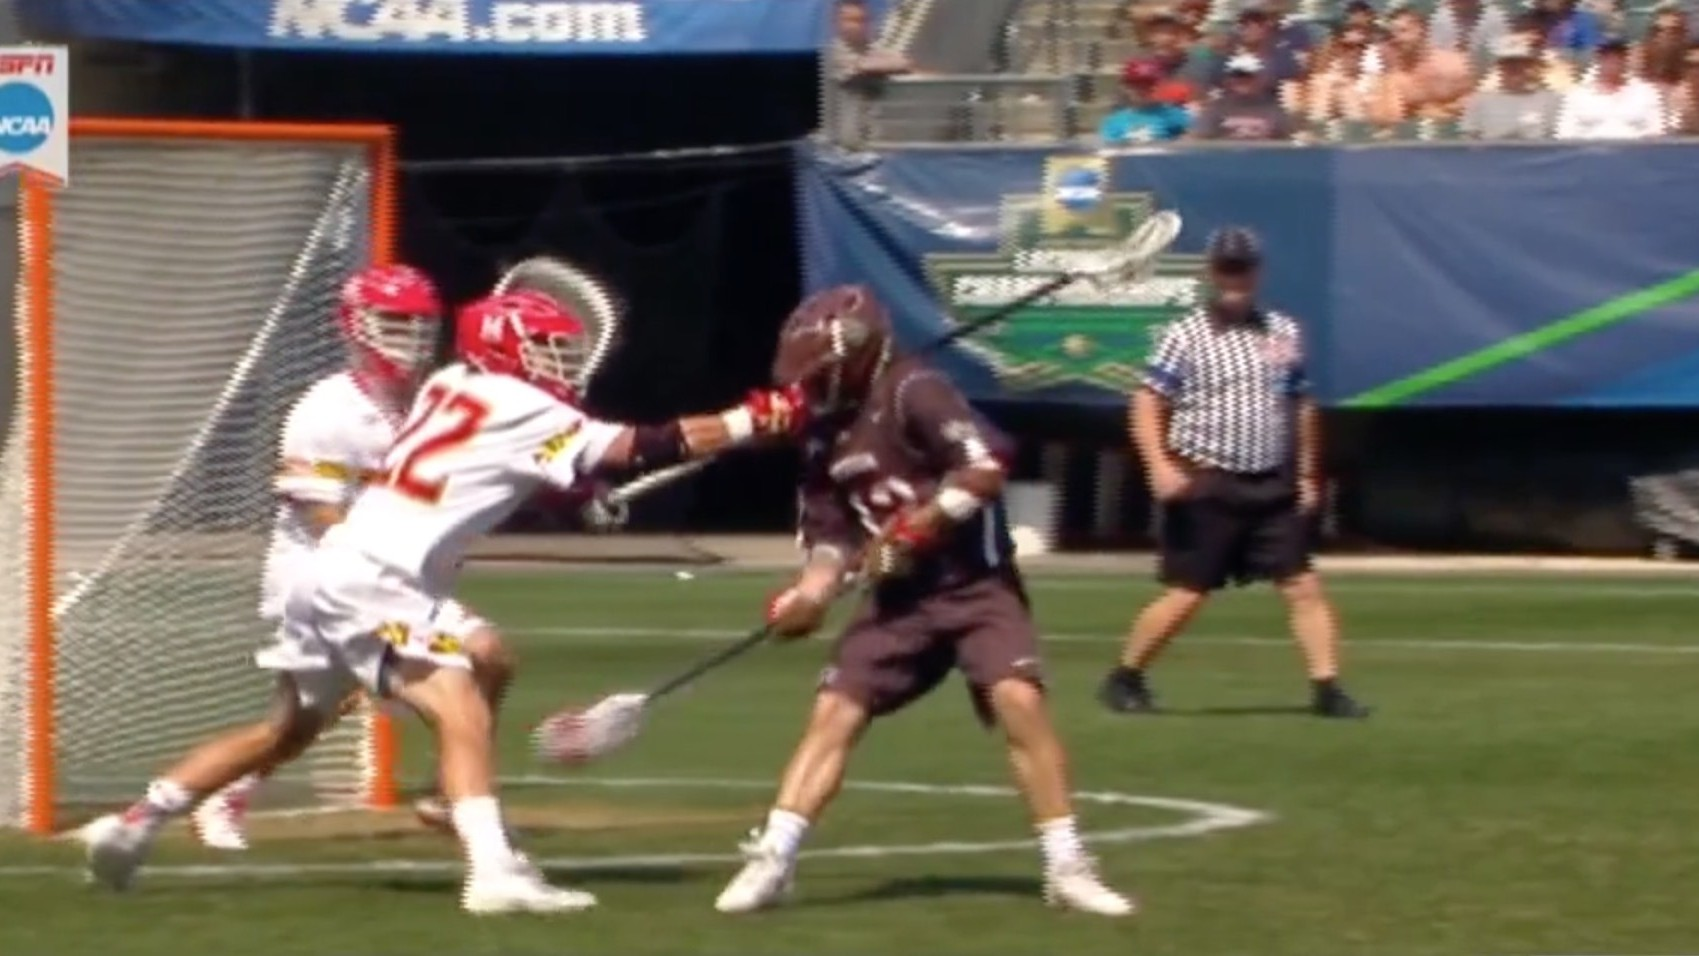 Brown University Lacrosse Player Scores Devious Underhanded Goal